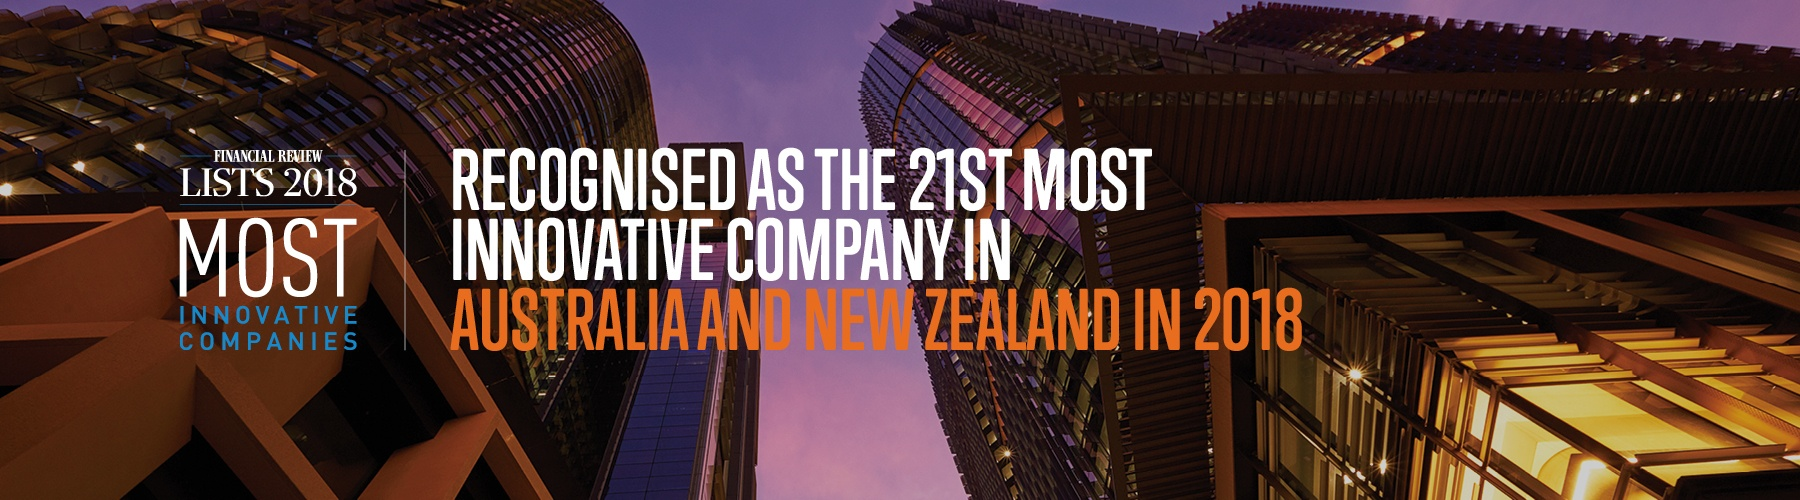 Recognised as the 21st Most Innovative Company in Australia and New Zealand in 2018